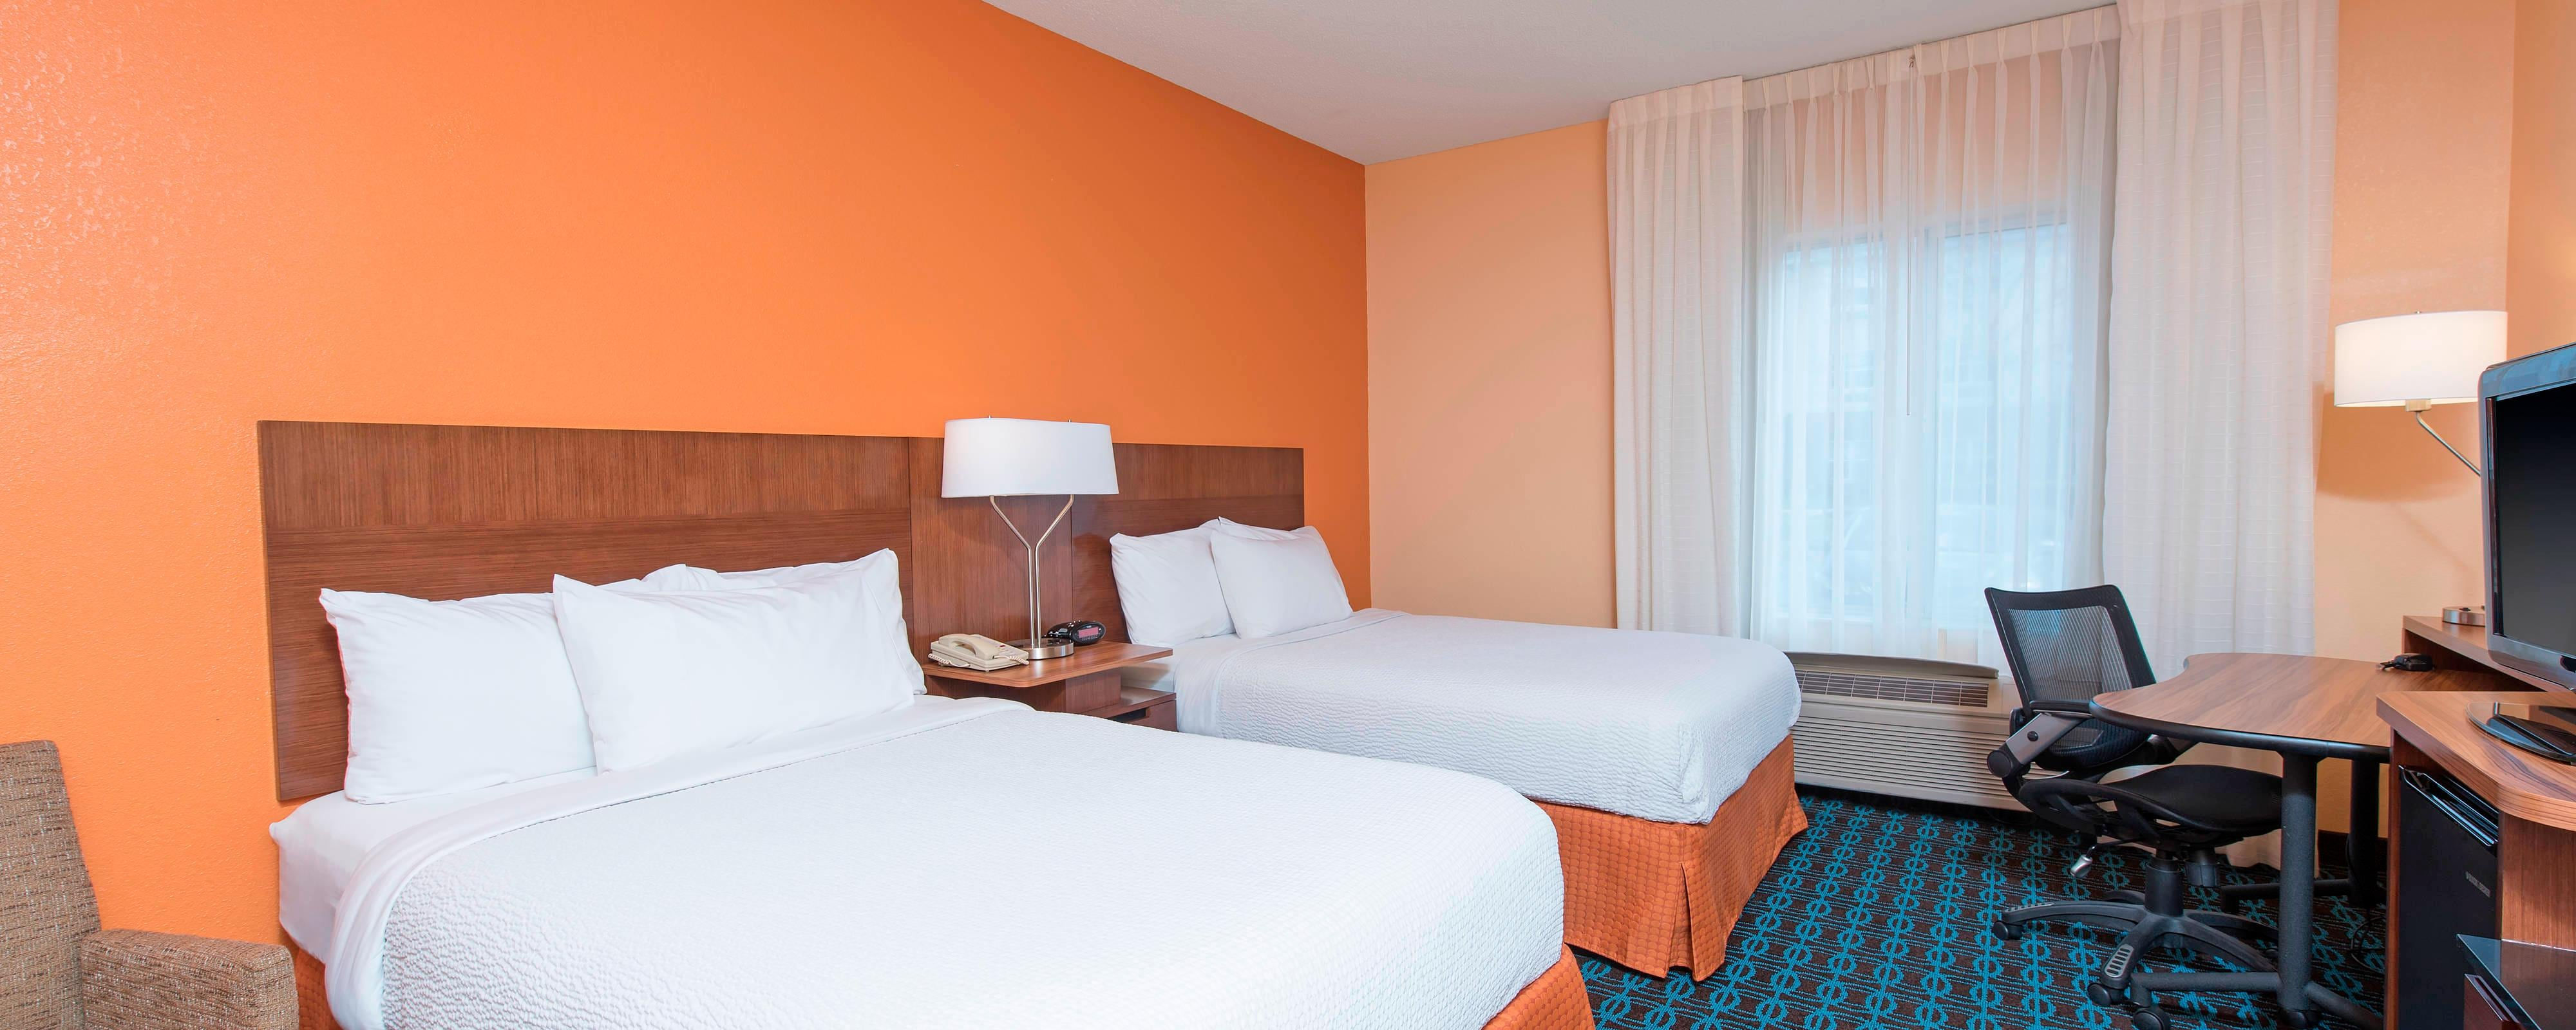 Chambre double du Fairfield Inn & Suites Columbus East